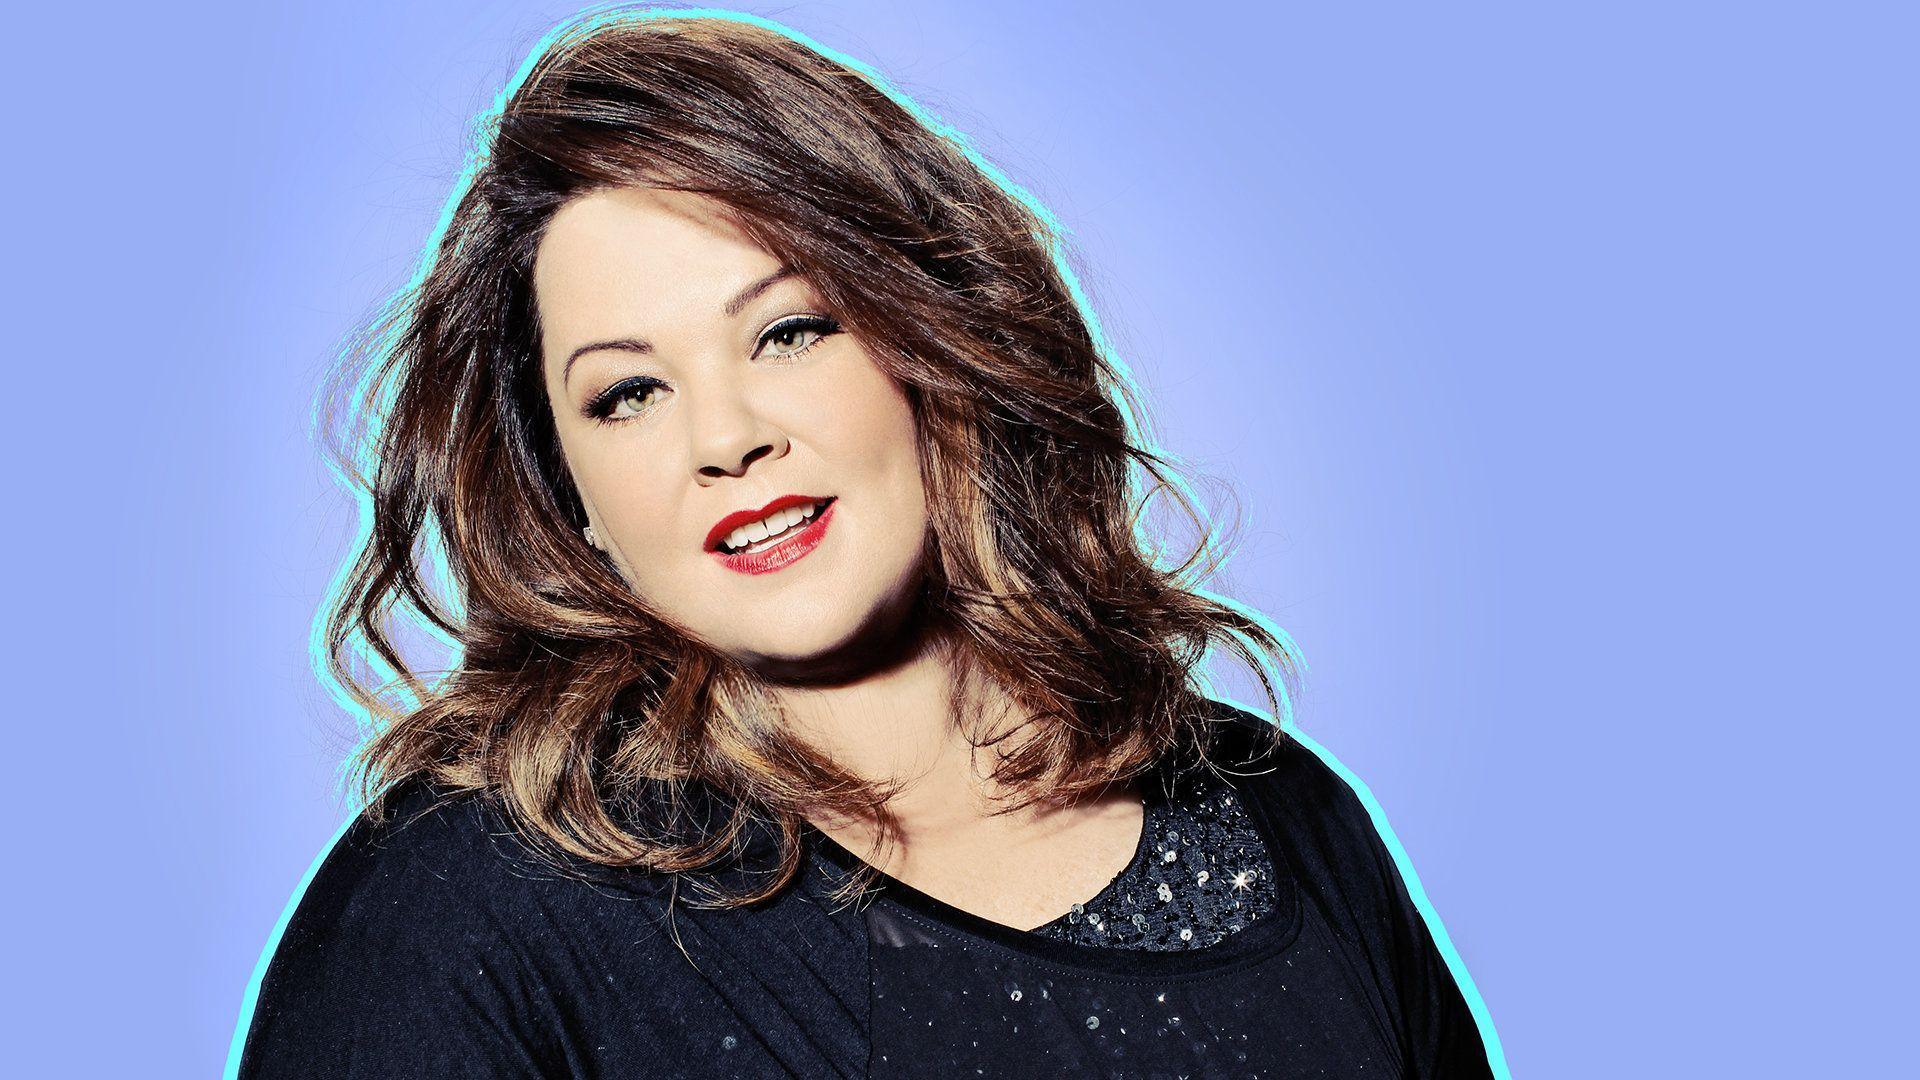 Melissa Mccarthy Wallpapers Images Photos Pictures Backgrounds